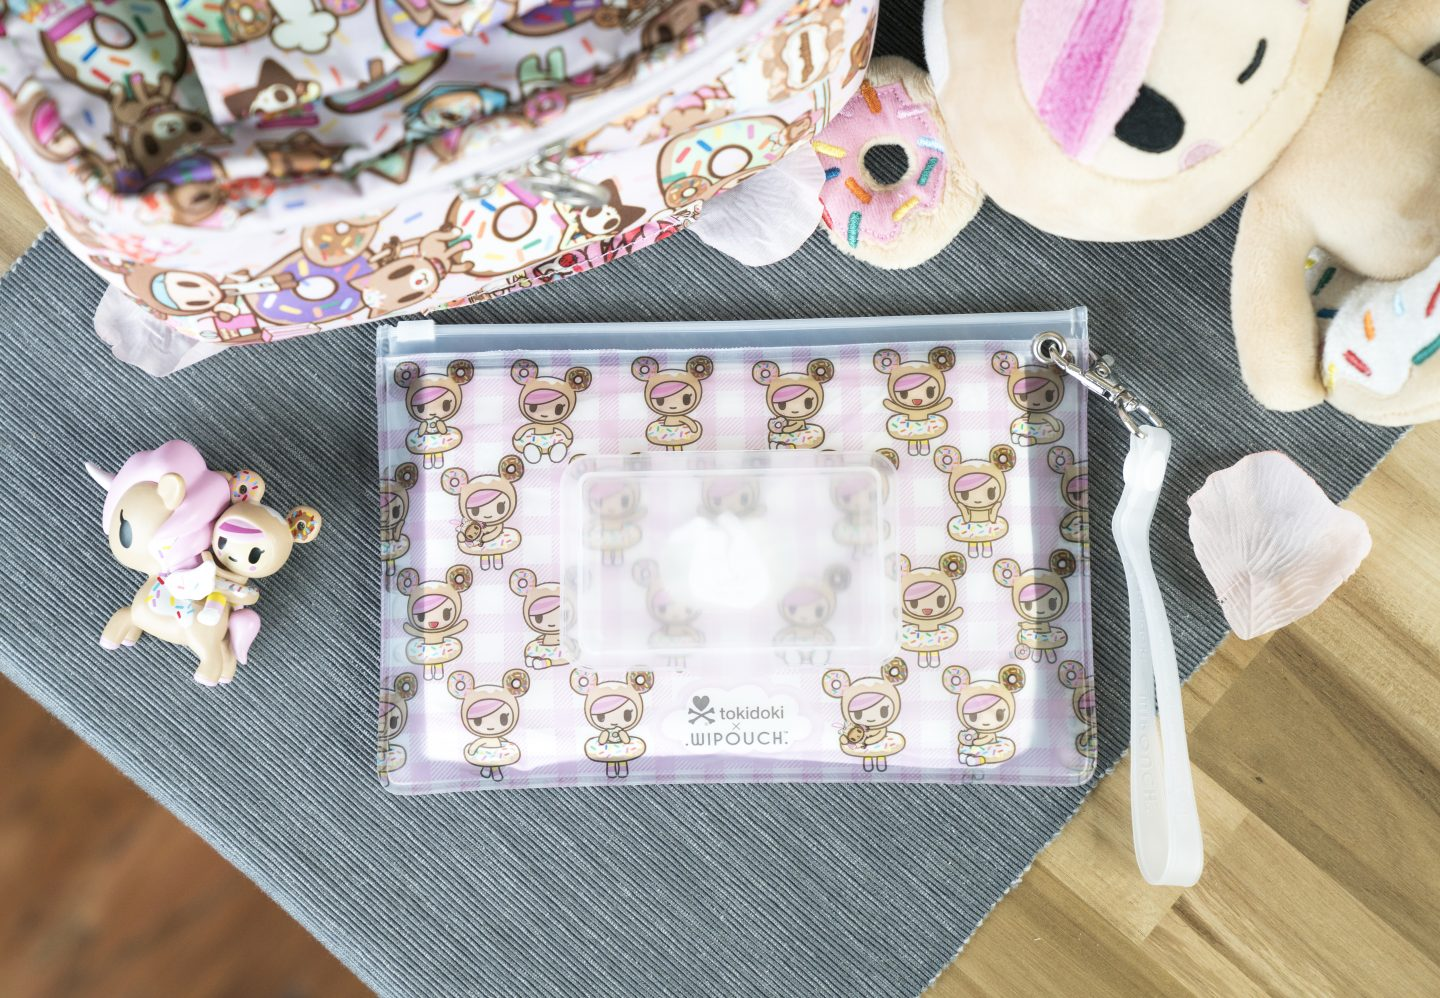 Tokidoki x Wipouch Collaboration – Donutella!